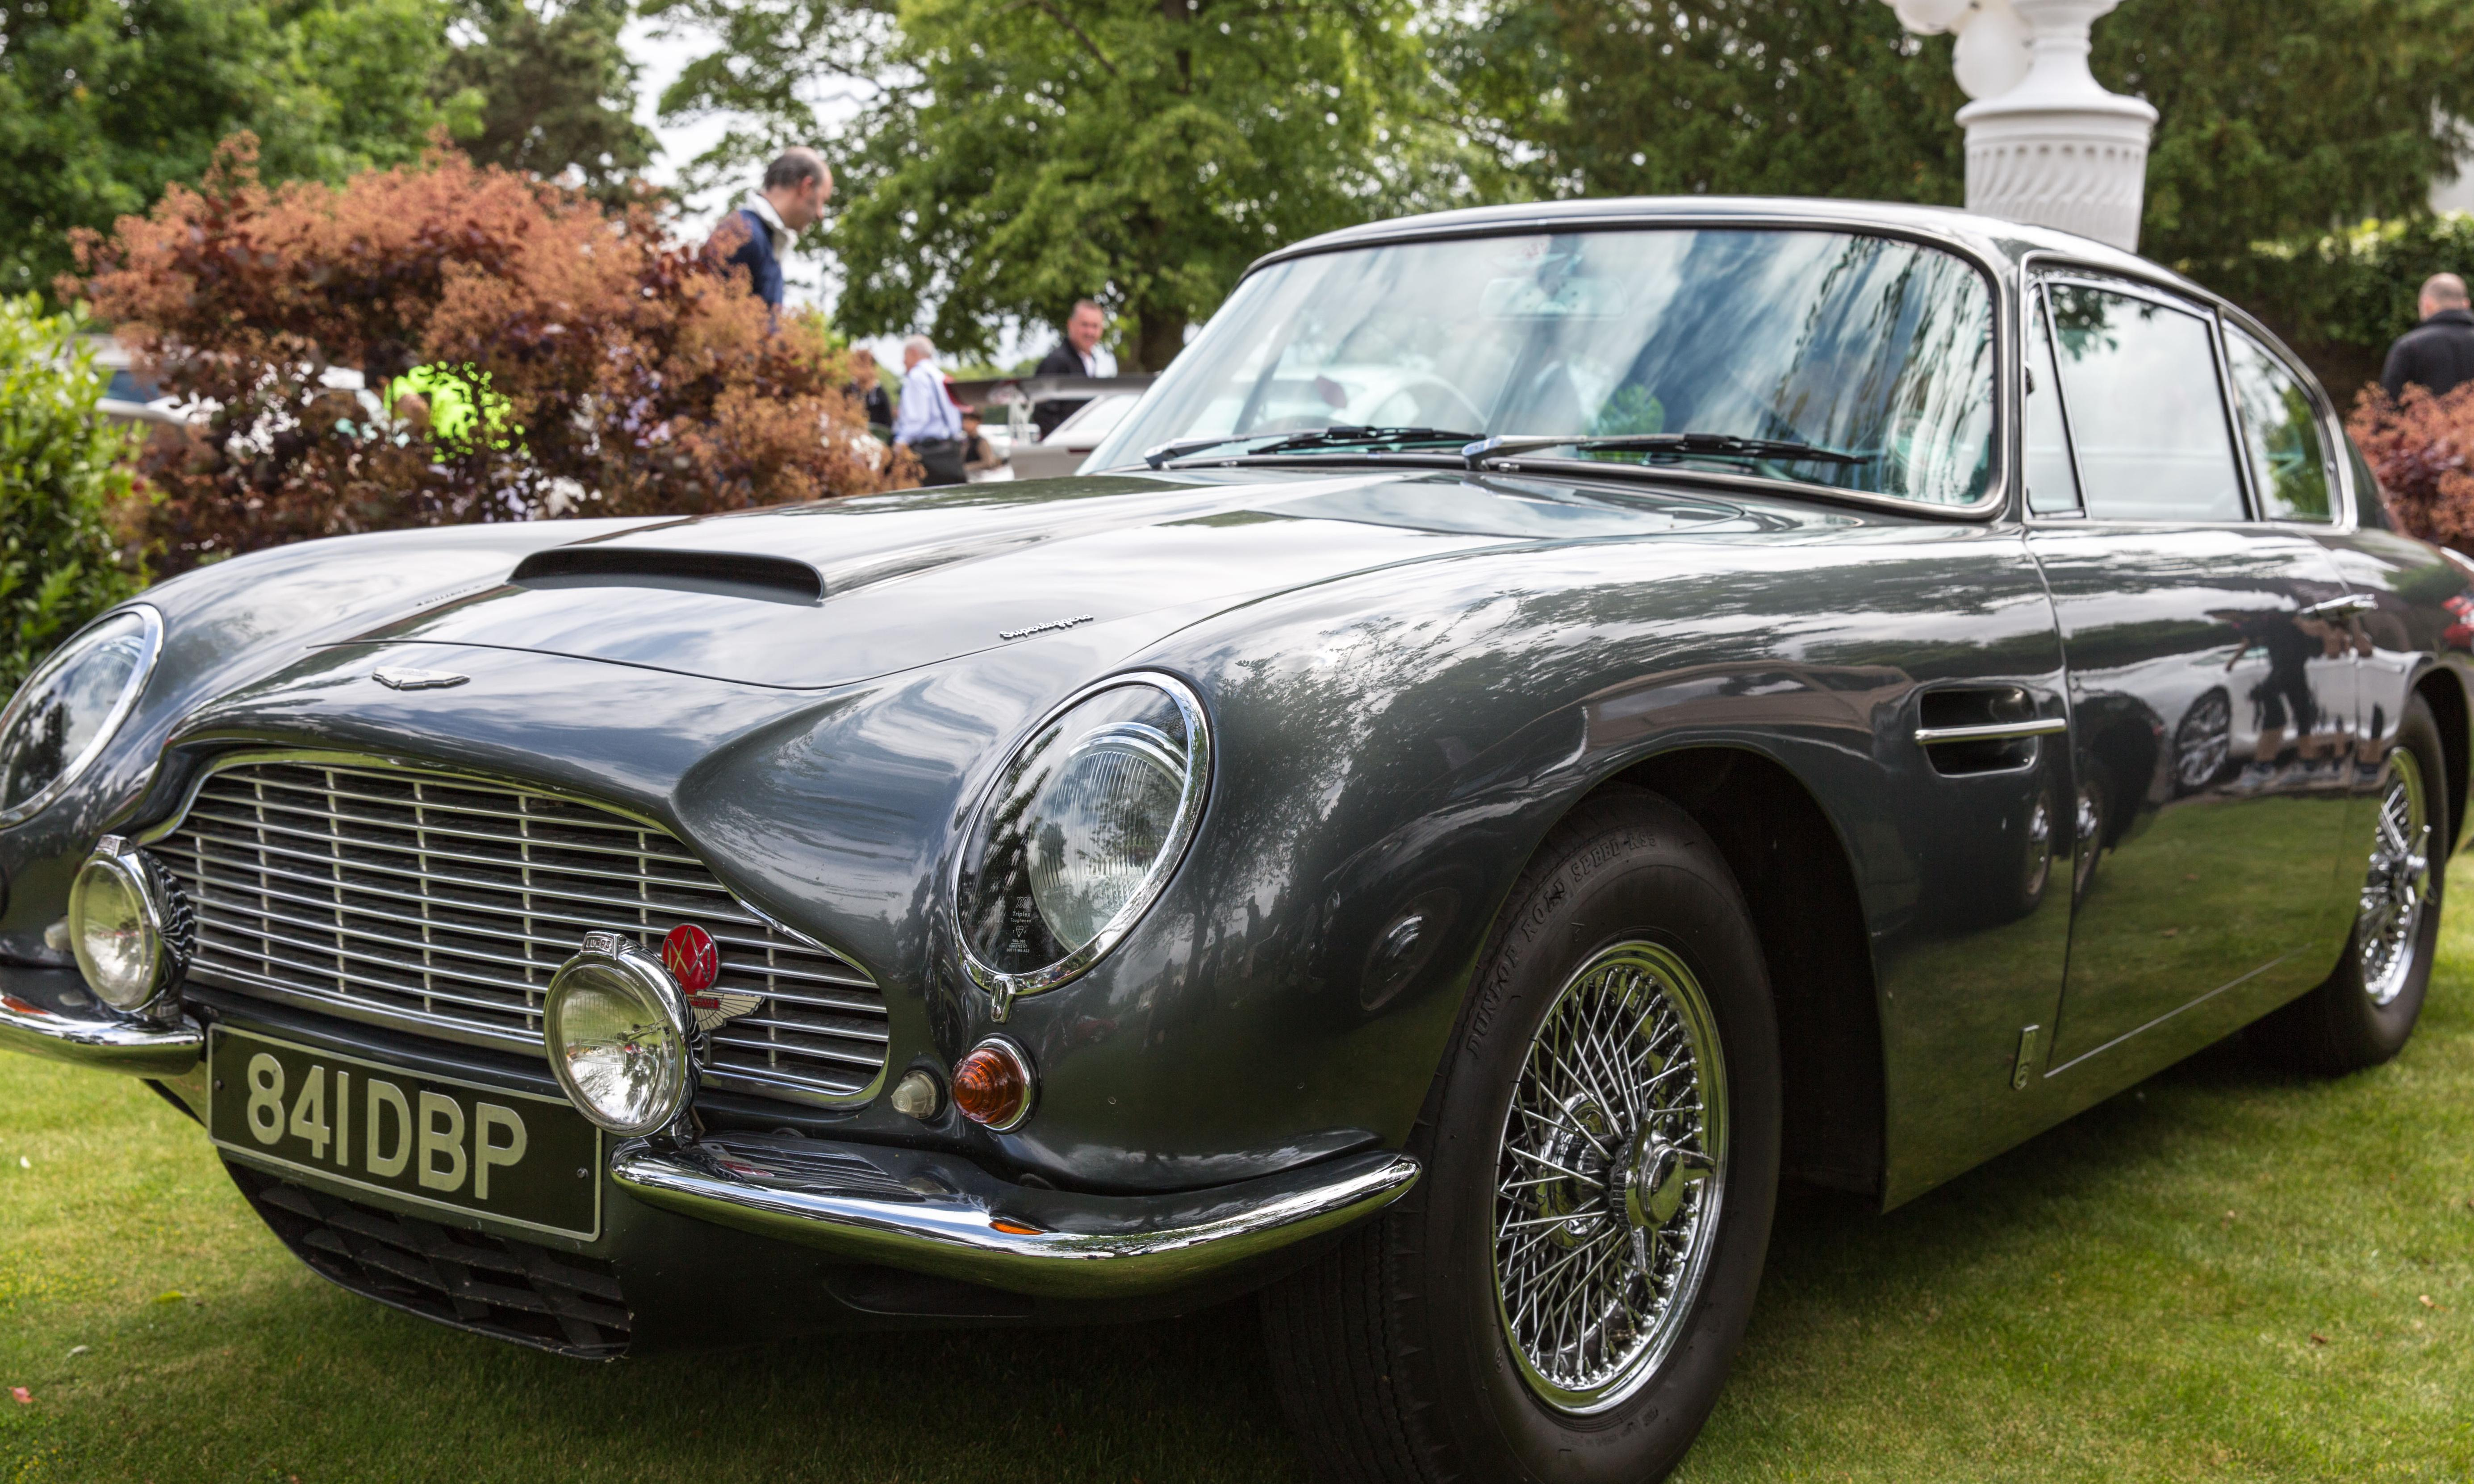 James Bond Aston Martin DB5 sold at auction for £5.2m